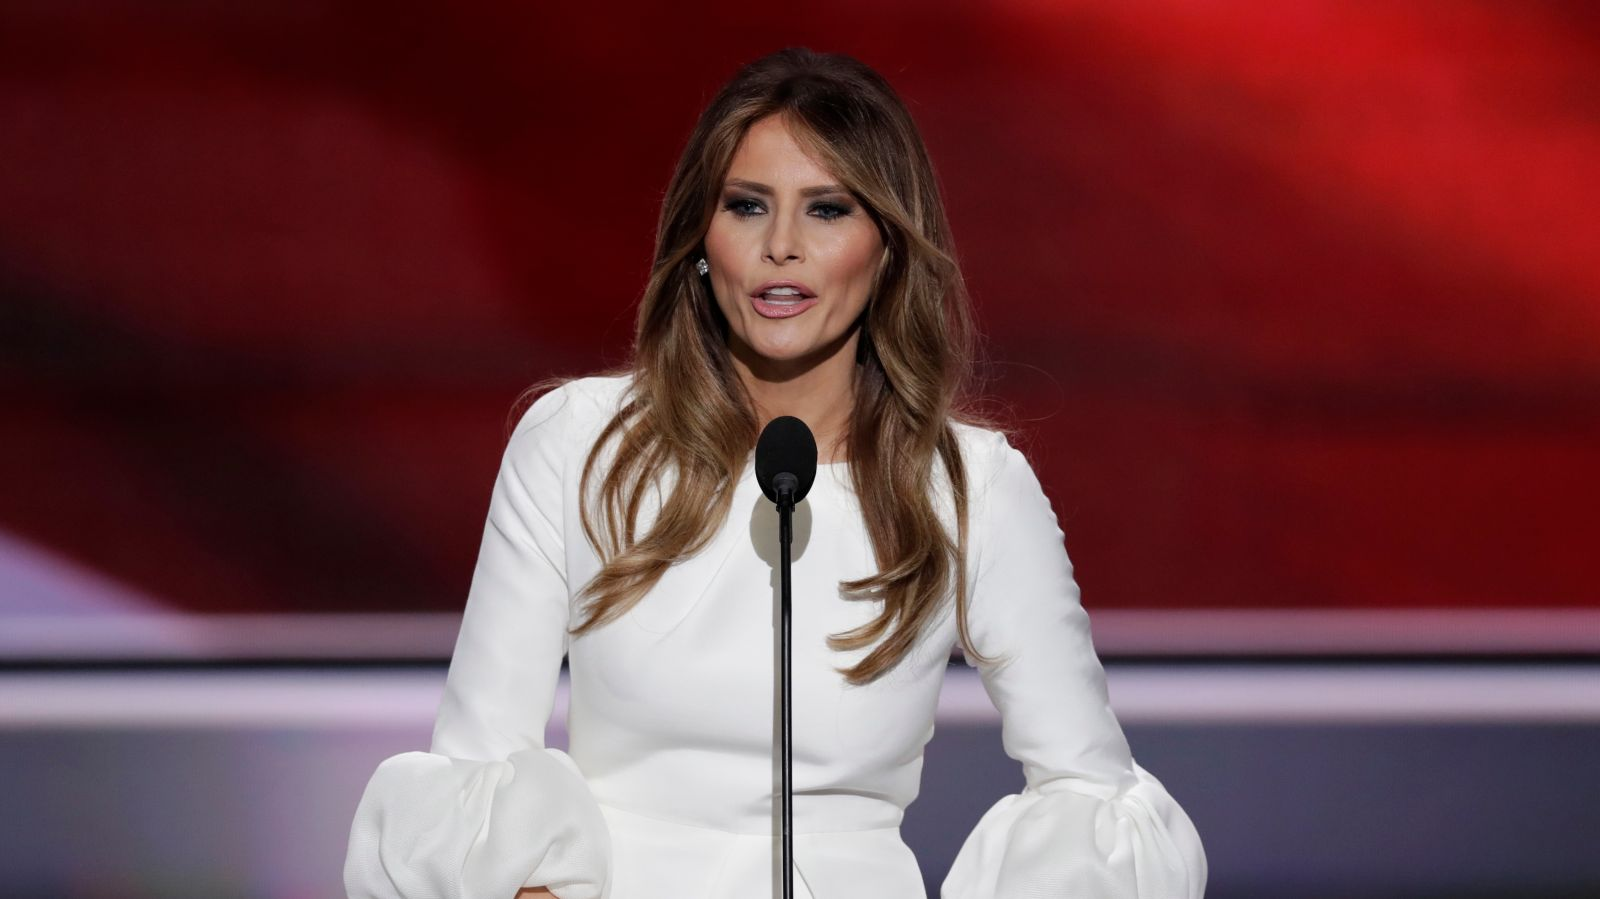 Melania Trump Nude Pics: Actually Published by New York